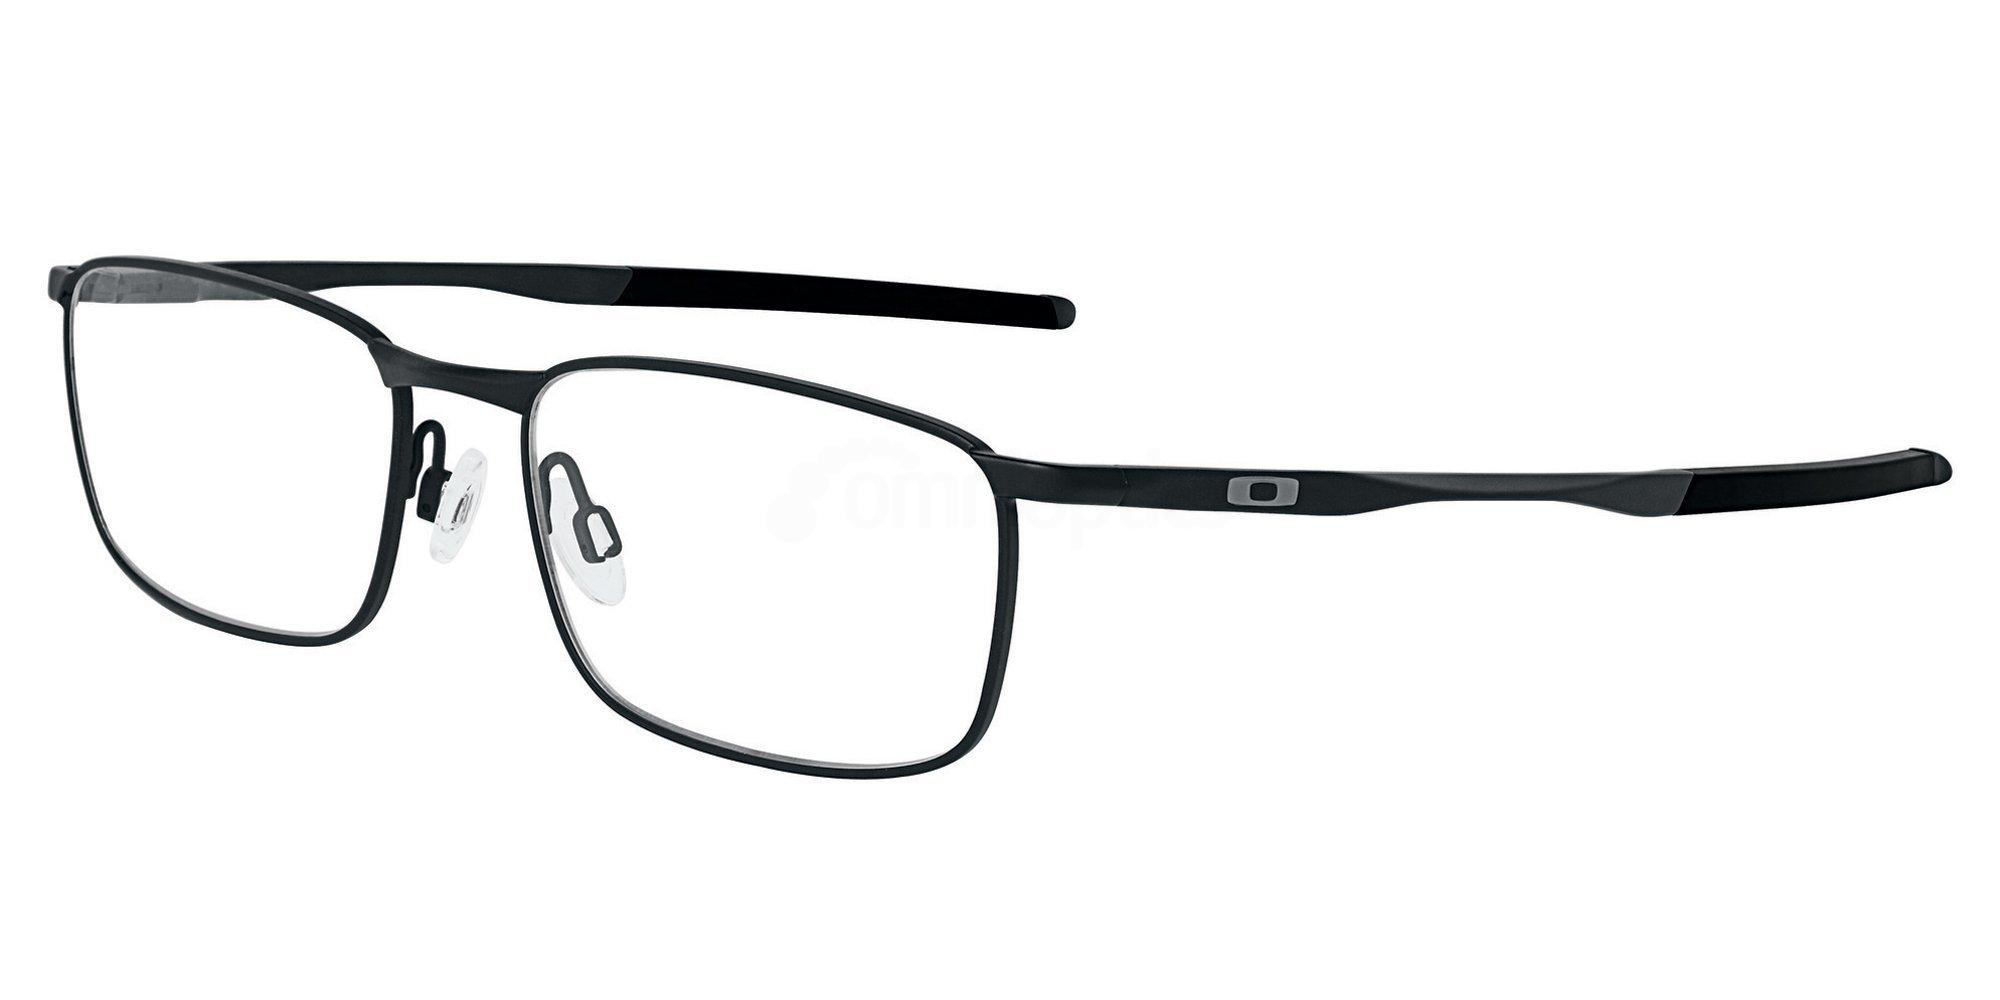 317301 OX3173 BARRELHOUSE Glasses, Oakley